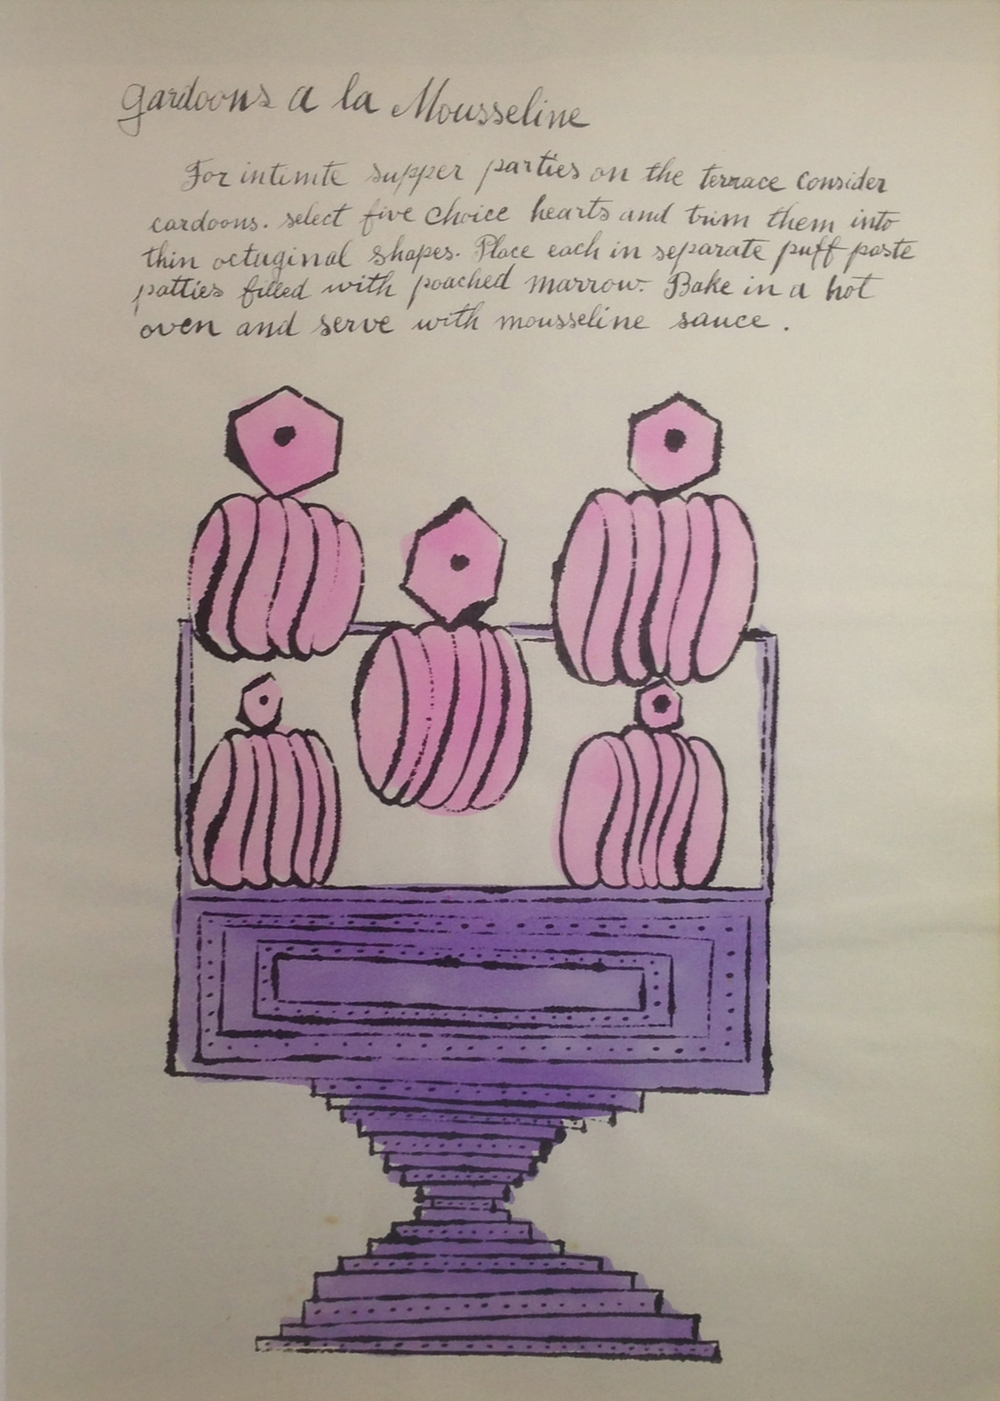 andy-warhol-gardoons-a-la-mousseline-from-wild-raspberries-series-prints-and-multiples-offset-lithograph-zoom